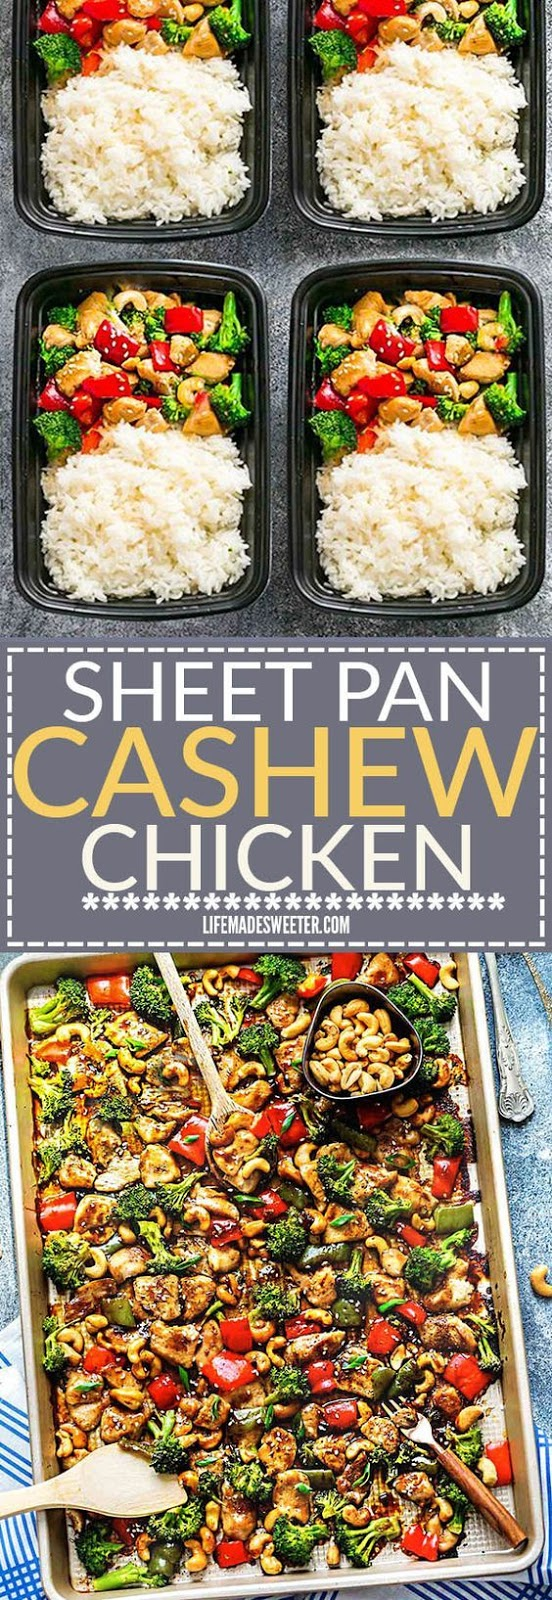 Cashew Chicken Sheet Pan has all the flavors of the popular Chinese restaurant takeout dish made on a sheet pan. Best of all, super easy to make with paleo friendly options. Plus a serving of tender crisp broccoli and red & green bell peppers for a healthier meal. Perfect for busy weeknights! Plus a step-by-step how to video! Weekly Sunday meal prep for the week and leftovers are great for lunch bowls & lunchboxes for work or school